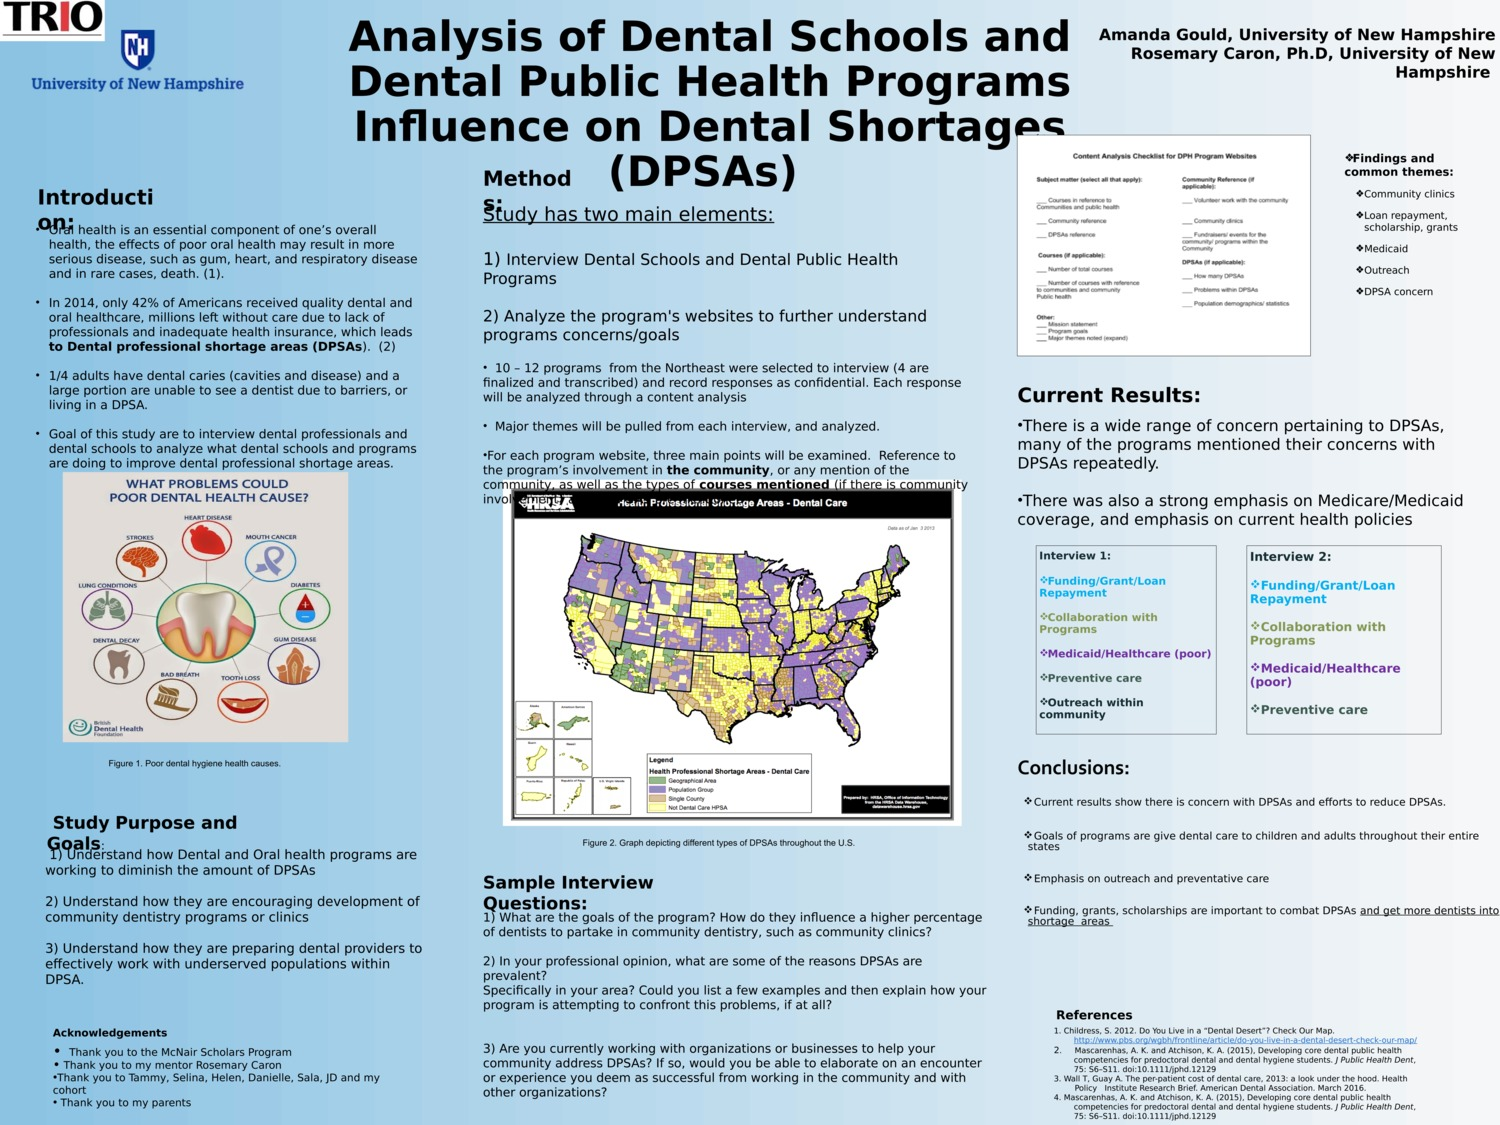 Analysis Of Dental Schools And Dental Public Health Programs Influence On Dental Shortage Areas (Dpsas) by aag2003